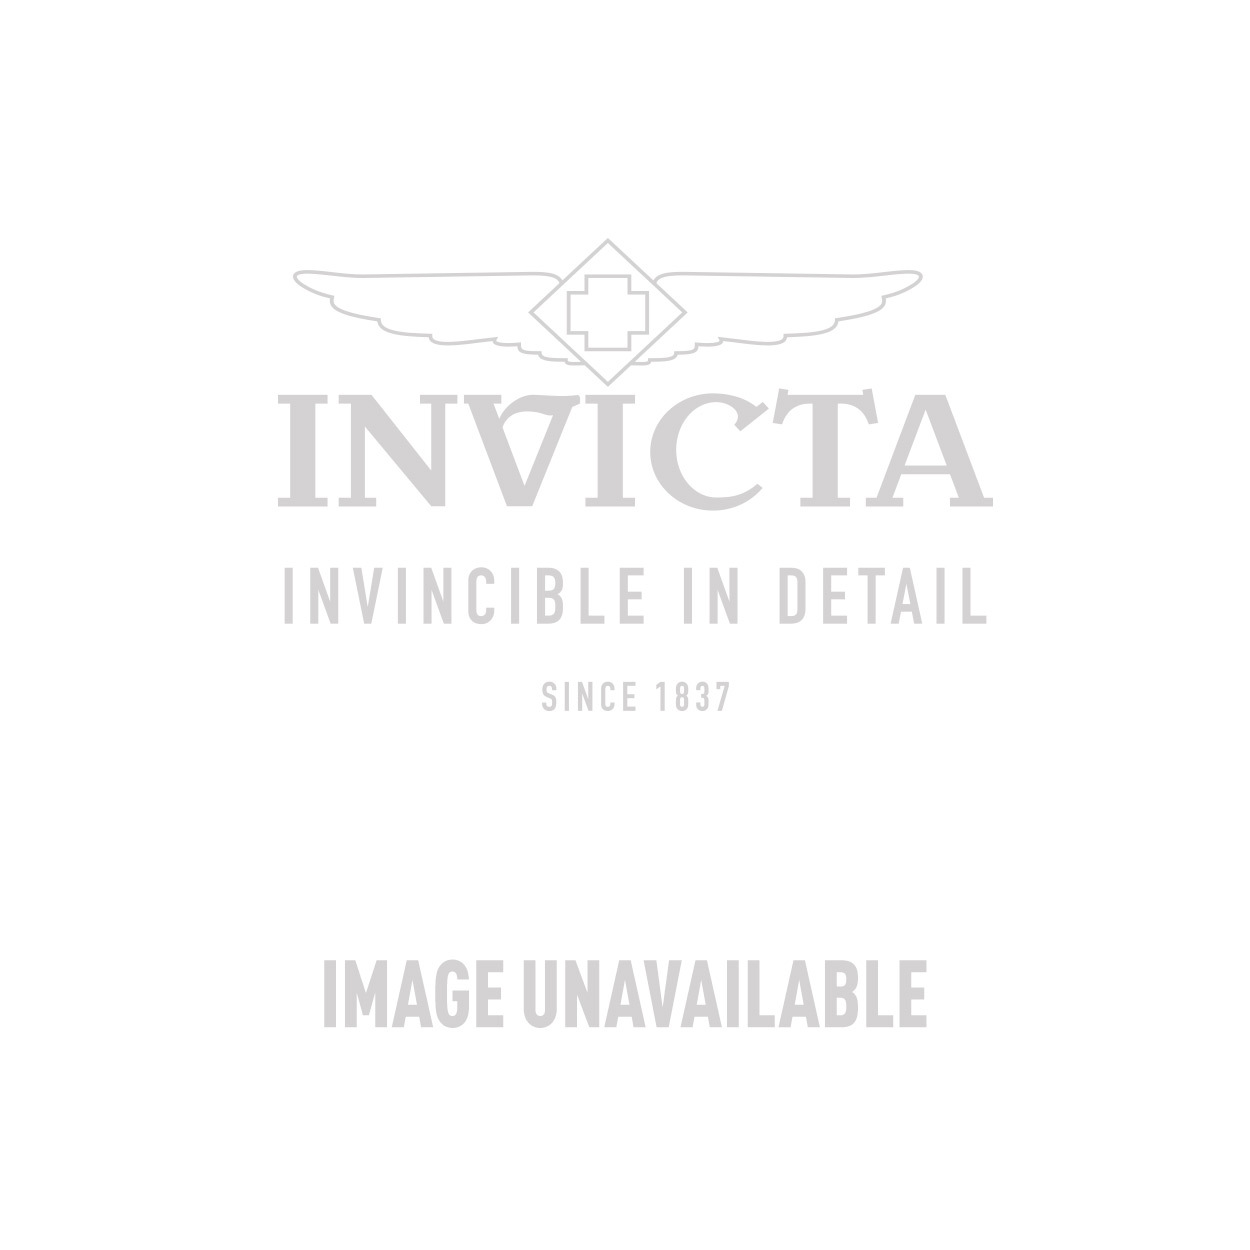 Invicta Specialty Quartz Watch - Gold, Stainless Steel case with Steel, Gold tone Stainless Steel band - Model 14876